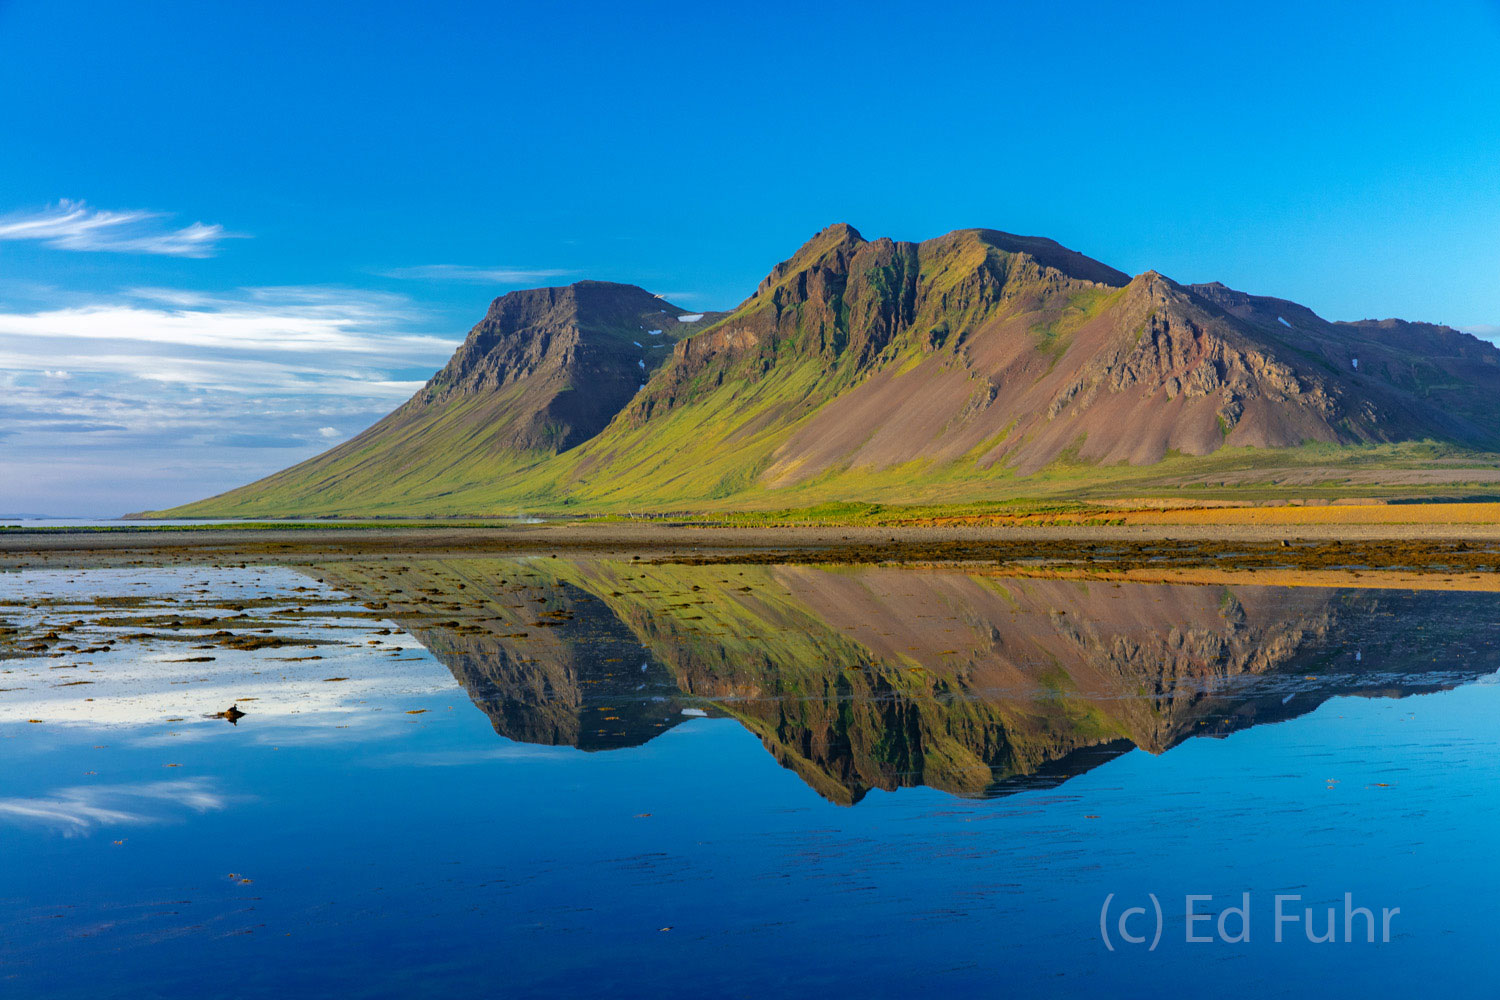 In the late light of day, this small mountain reflects in the nearby bay.